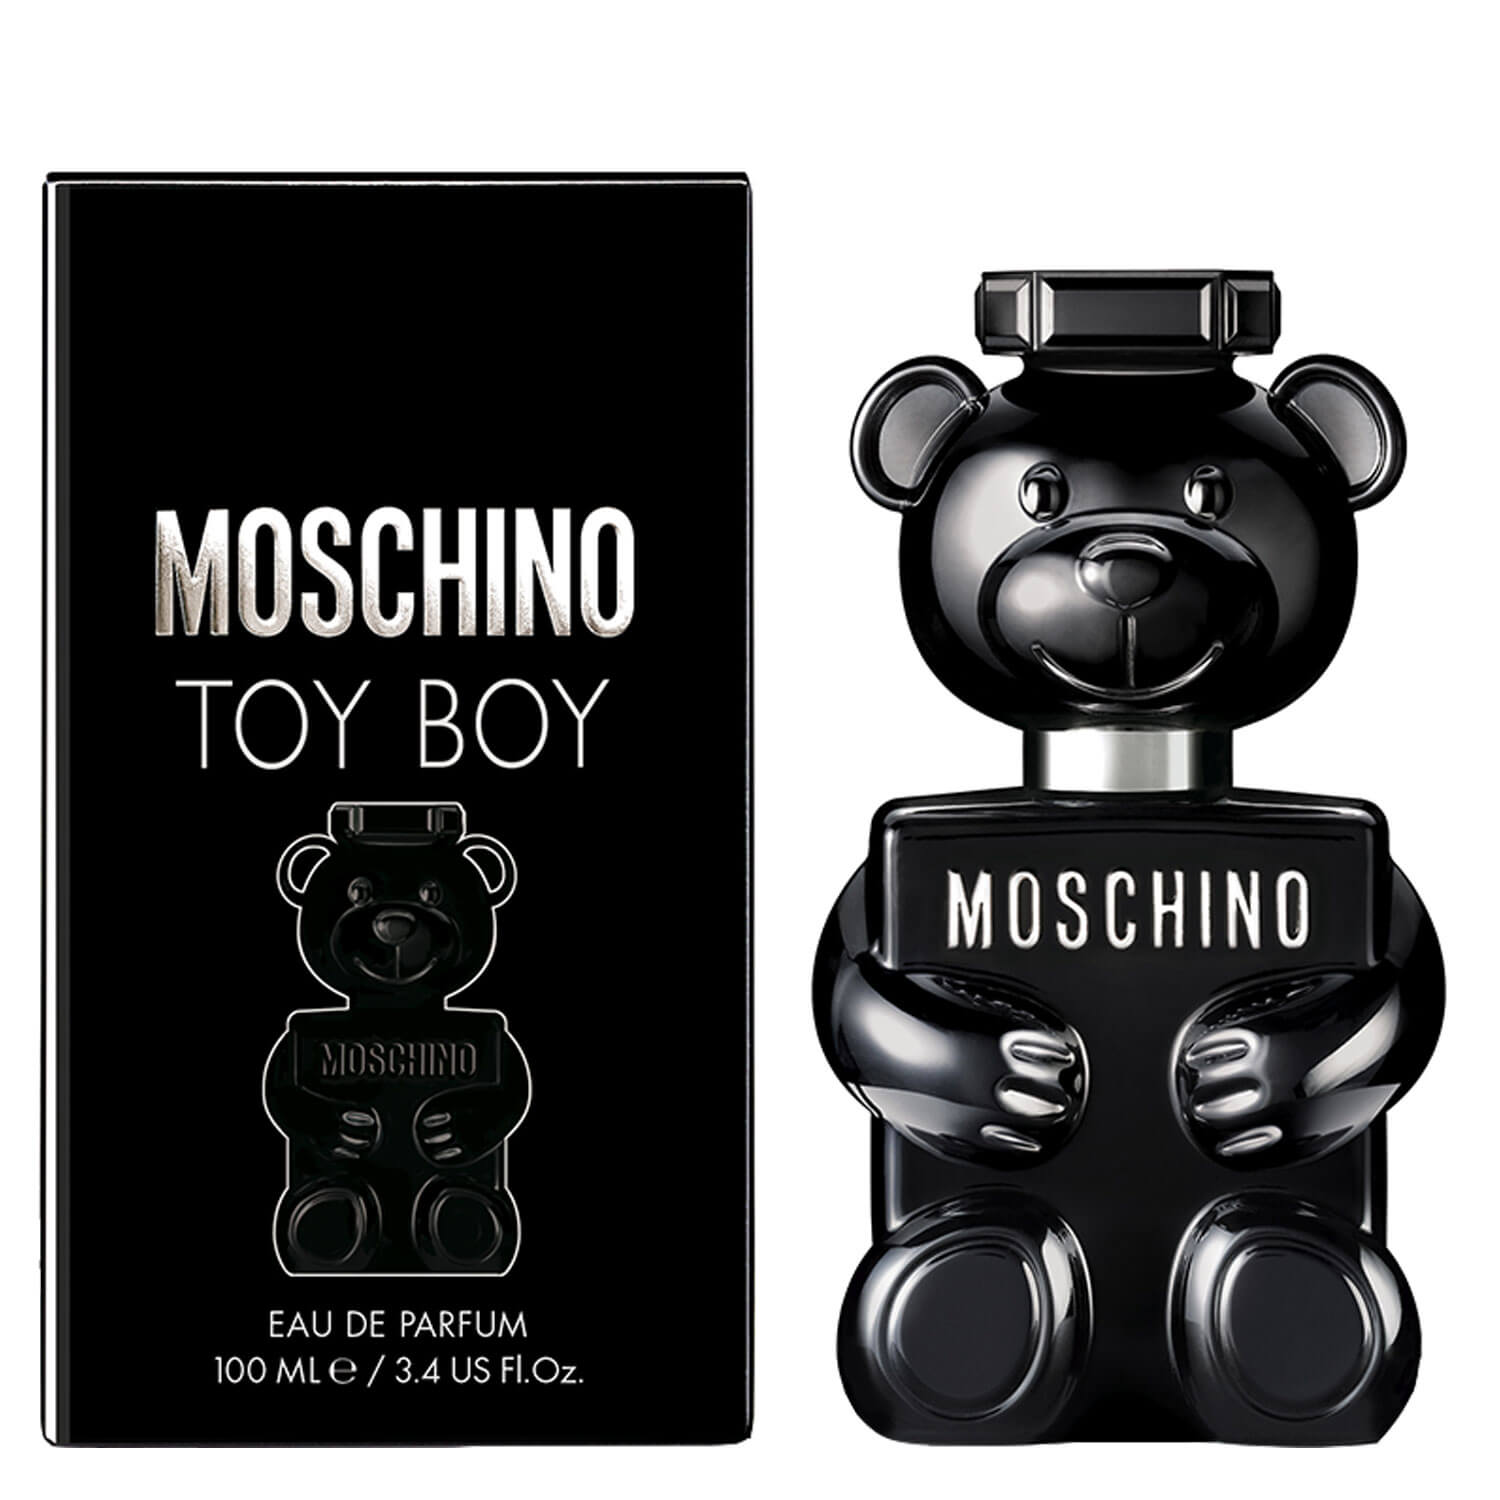 Toy Boy - Eau de Parfum Natural Spray